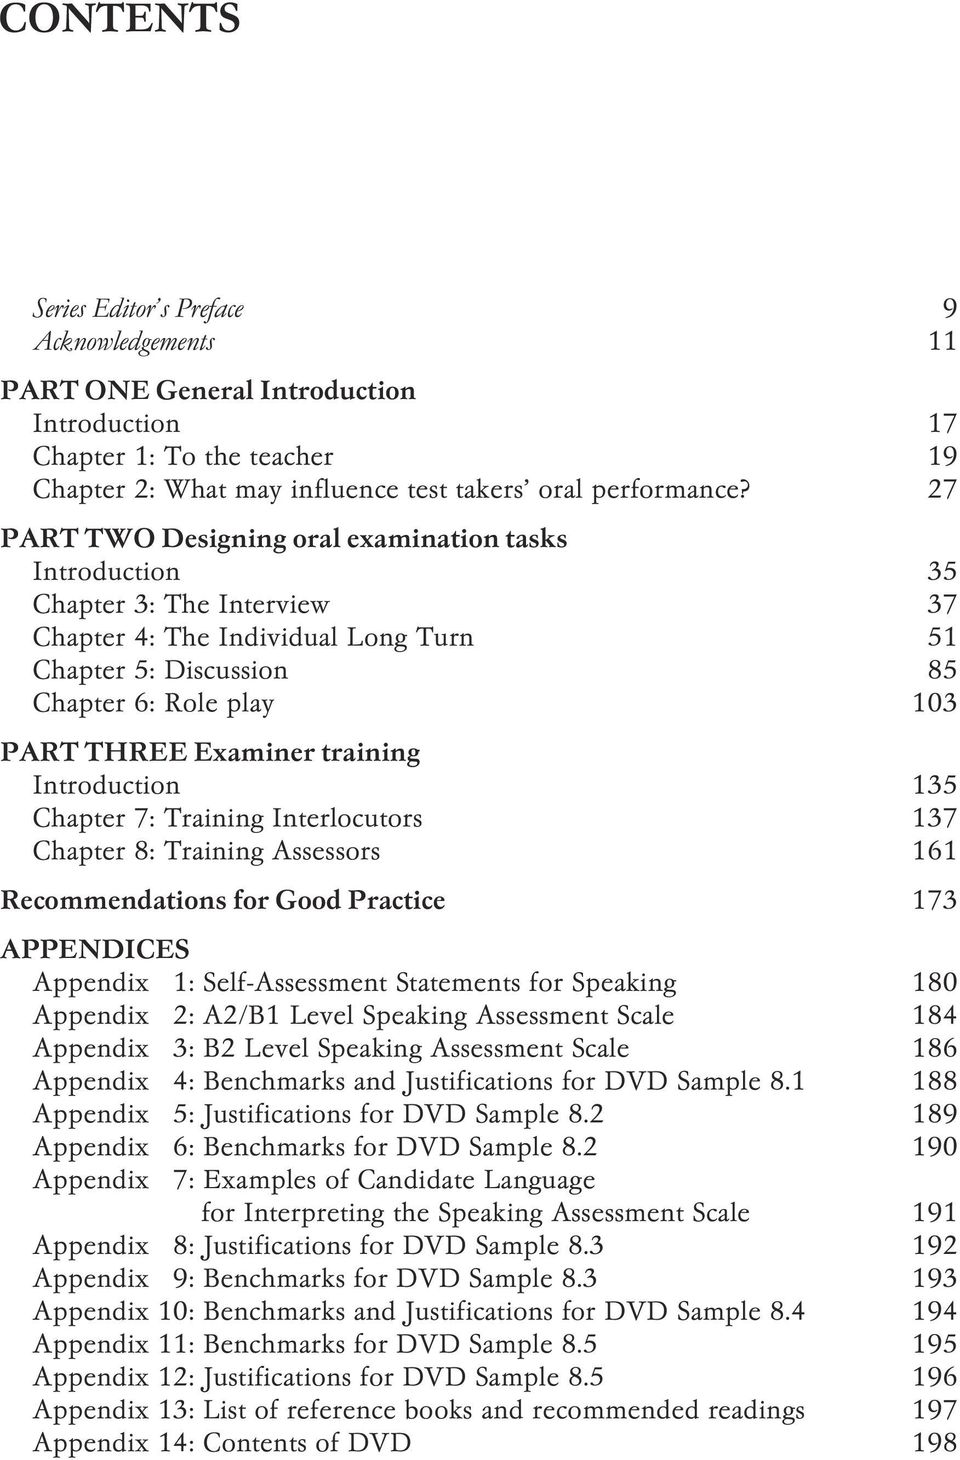 training Introduction 135 Chapter 7: Training Interlocutors 137 Chapter 8: Training Assessors 161 Recommendations for Good Practice 173 APPENDICES Appendix 1: Self-Assessment Statements for Speaking